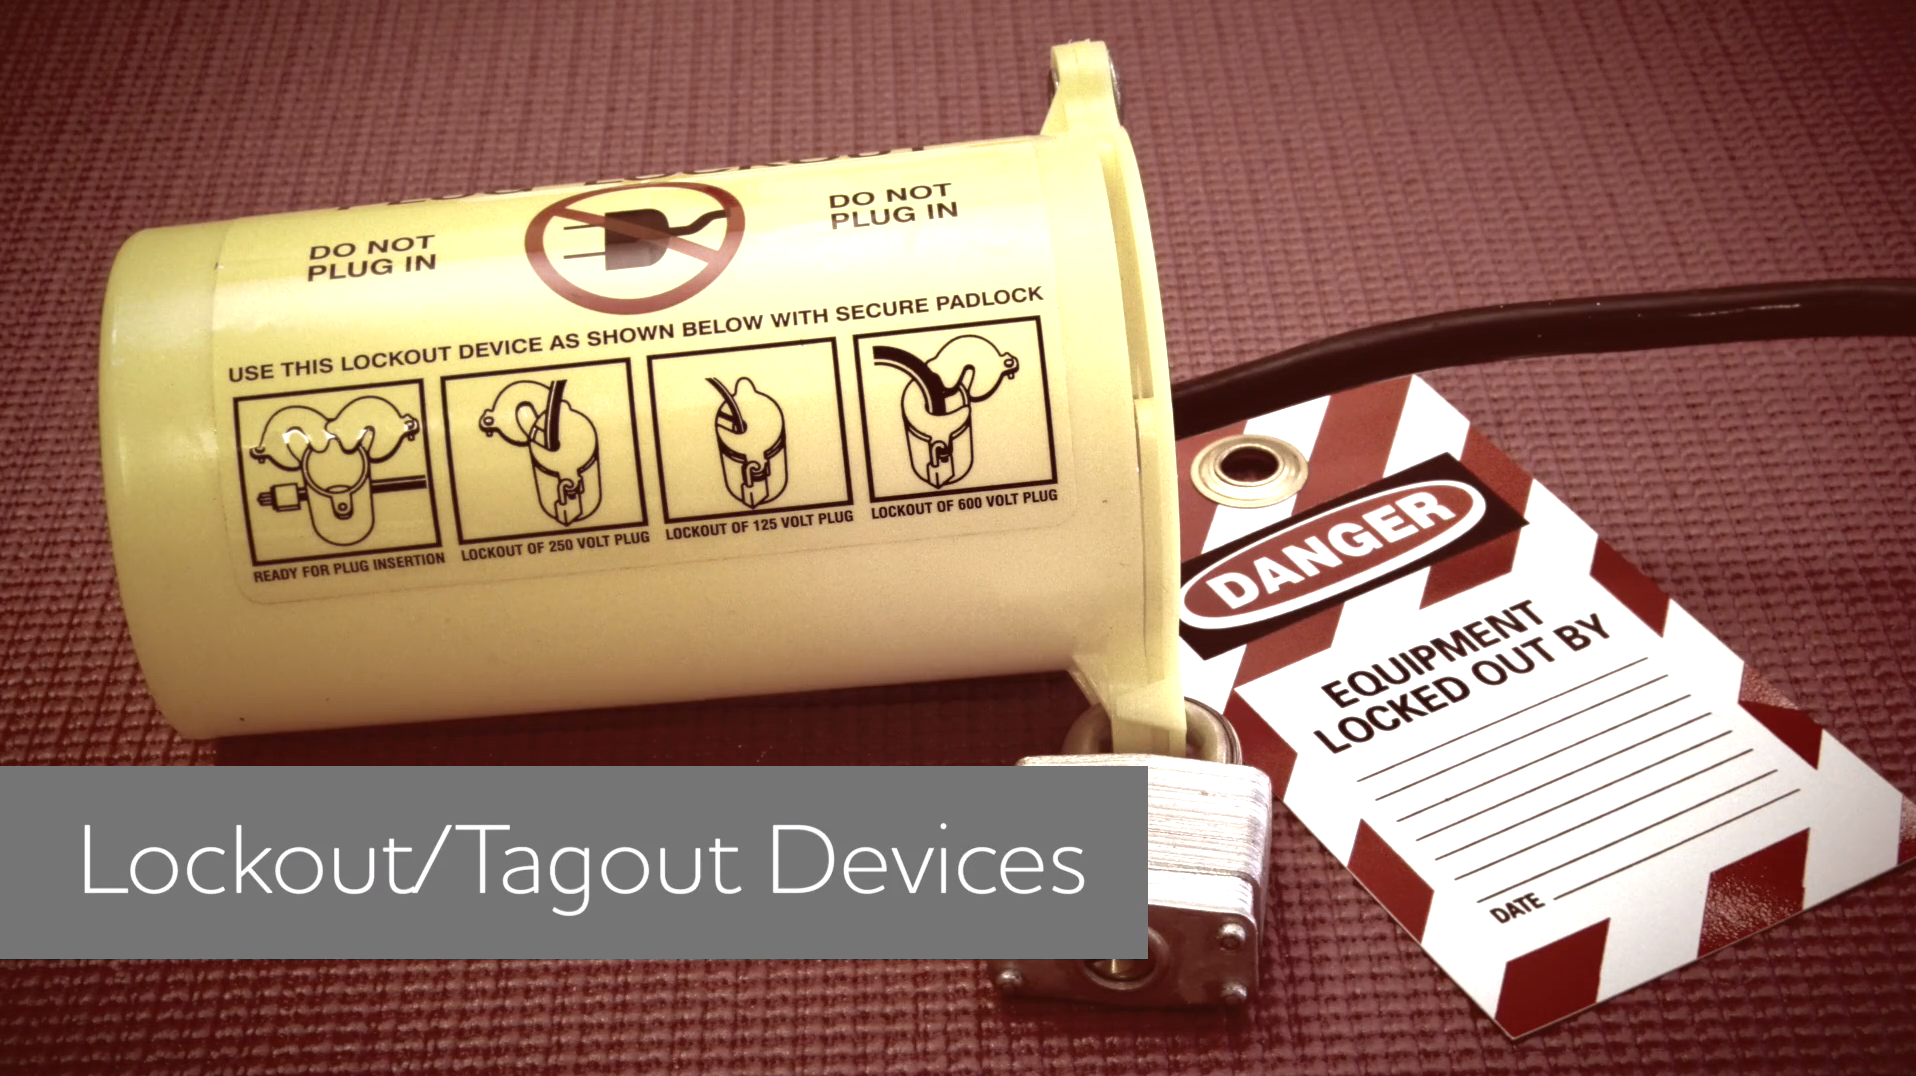 Lockout/Tagout (LOTO) Devices